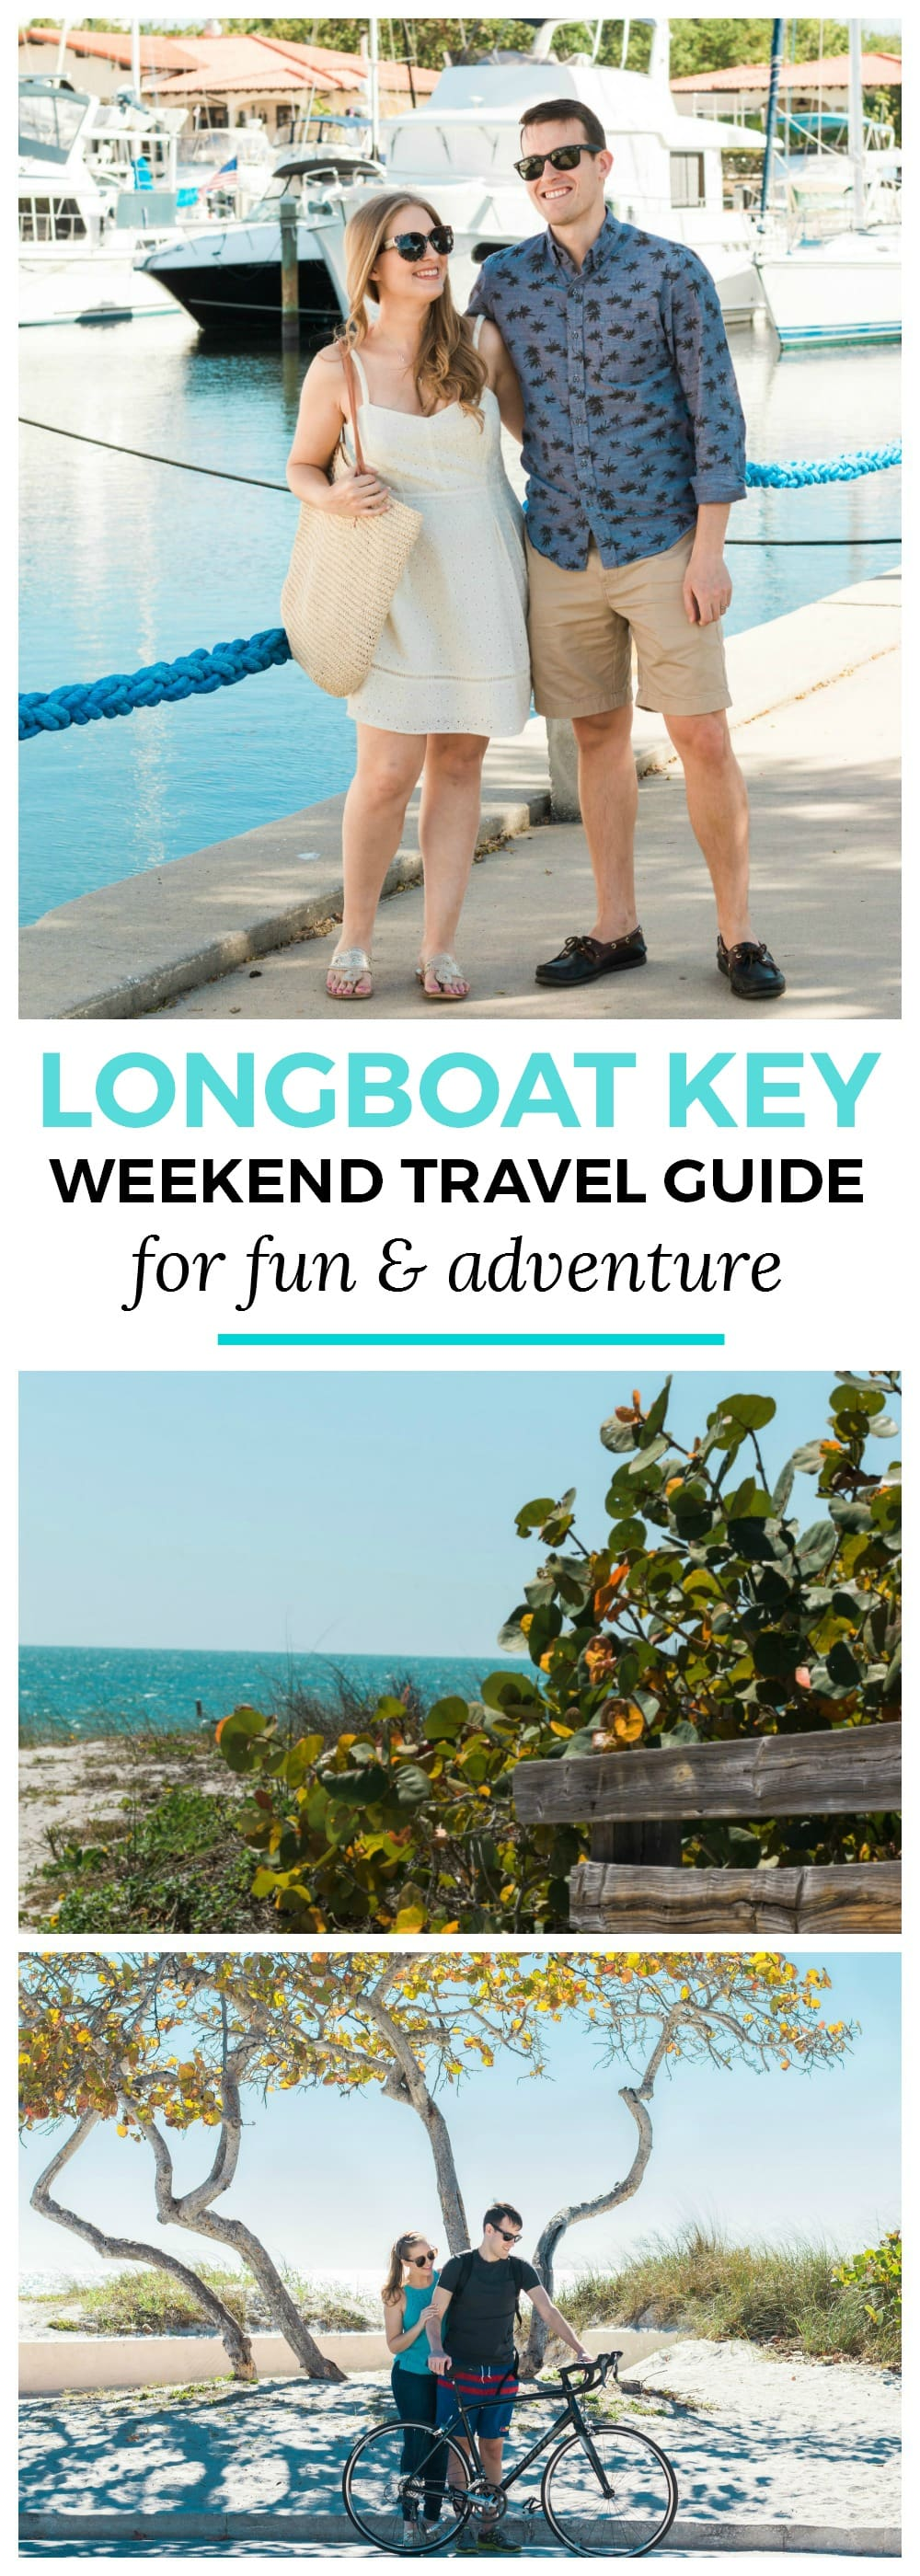 How to plan an adventurous weekend getaway in Longboat Key, Florida including a day of boating! #LoveFL sponsored by @visitflorida | Florida travel tips, beach vacation, vacation ideas, vacation goals, travel blogger Ashley Brooke Nicholas, Florida travel guide, Longboat Key travel guide, Sarasota travel guide, beautiful beaches, boating, affordable travel, US travel, summer vacation, spring break ideas